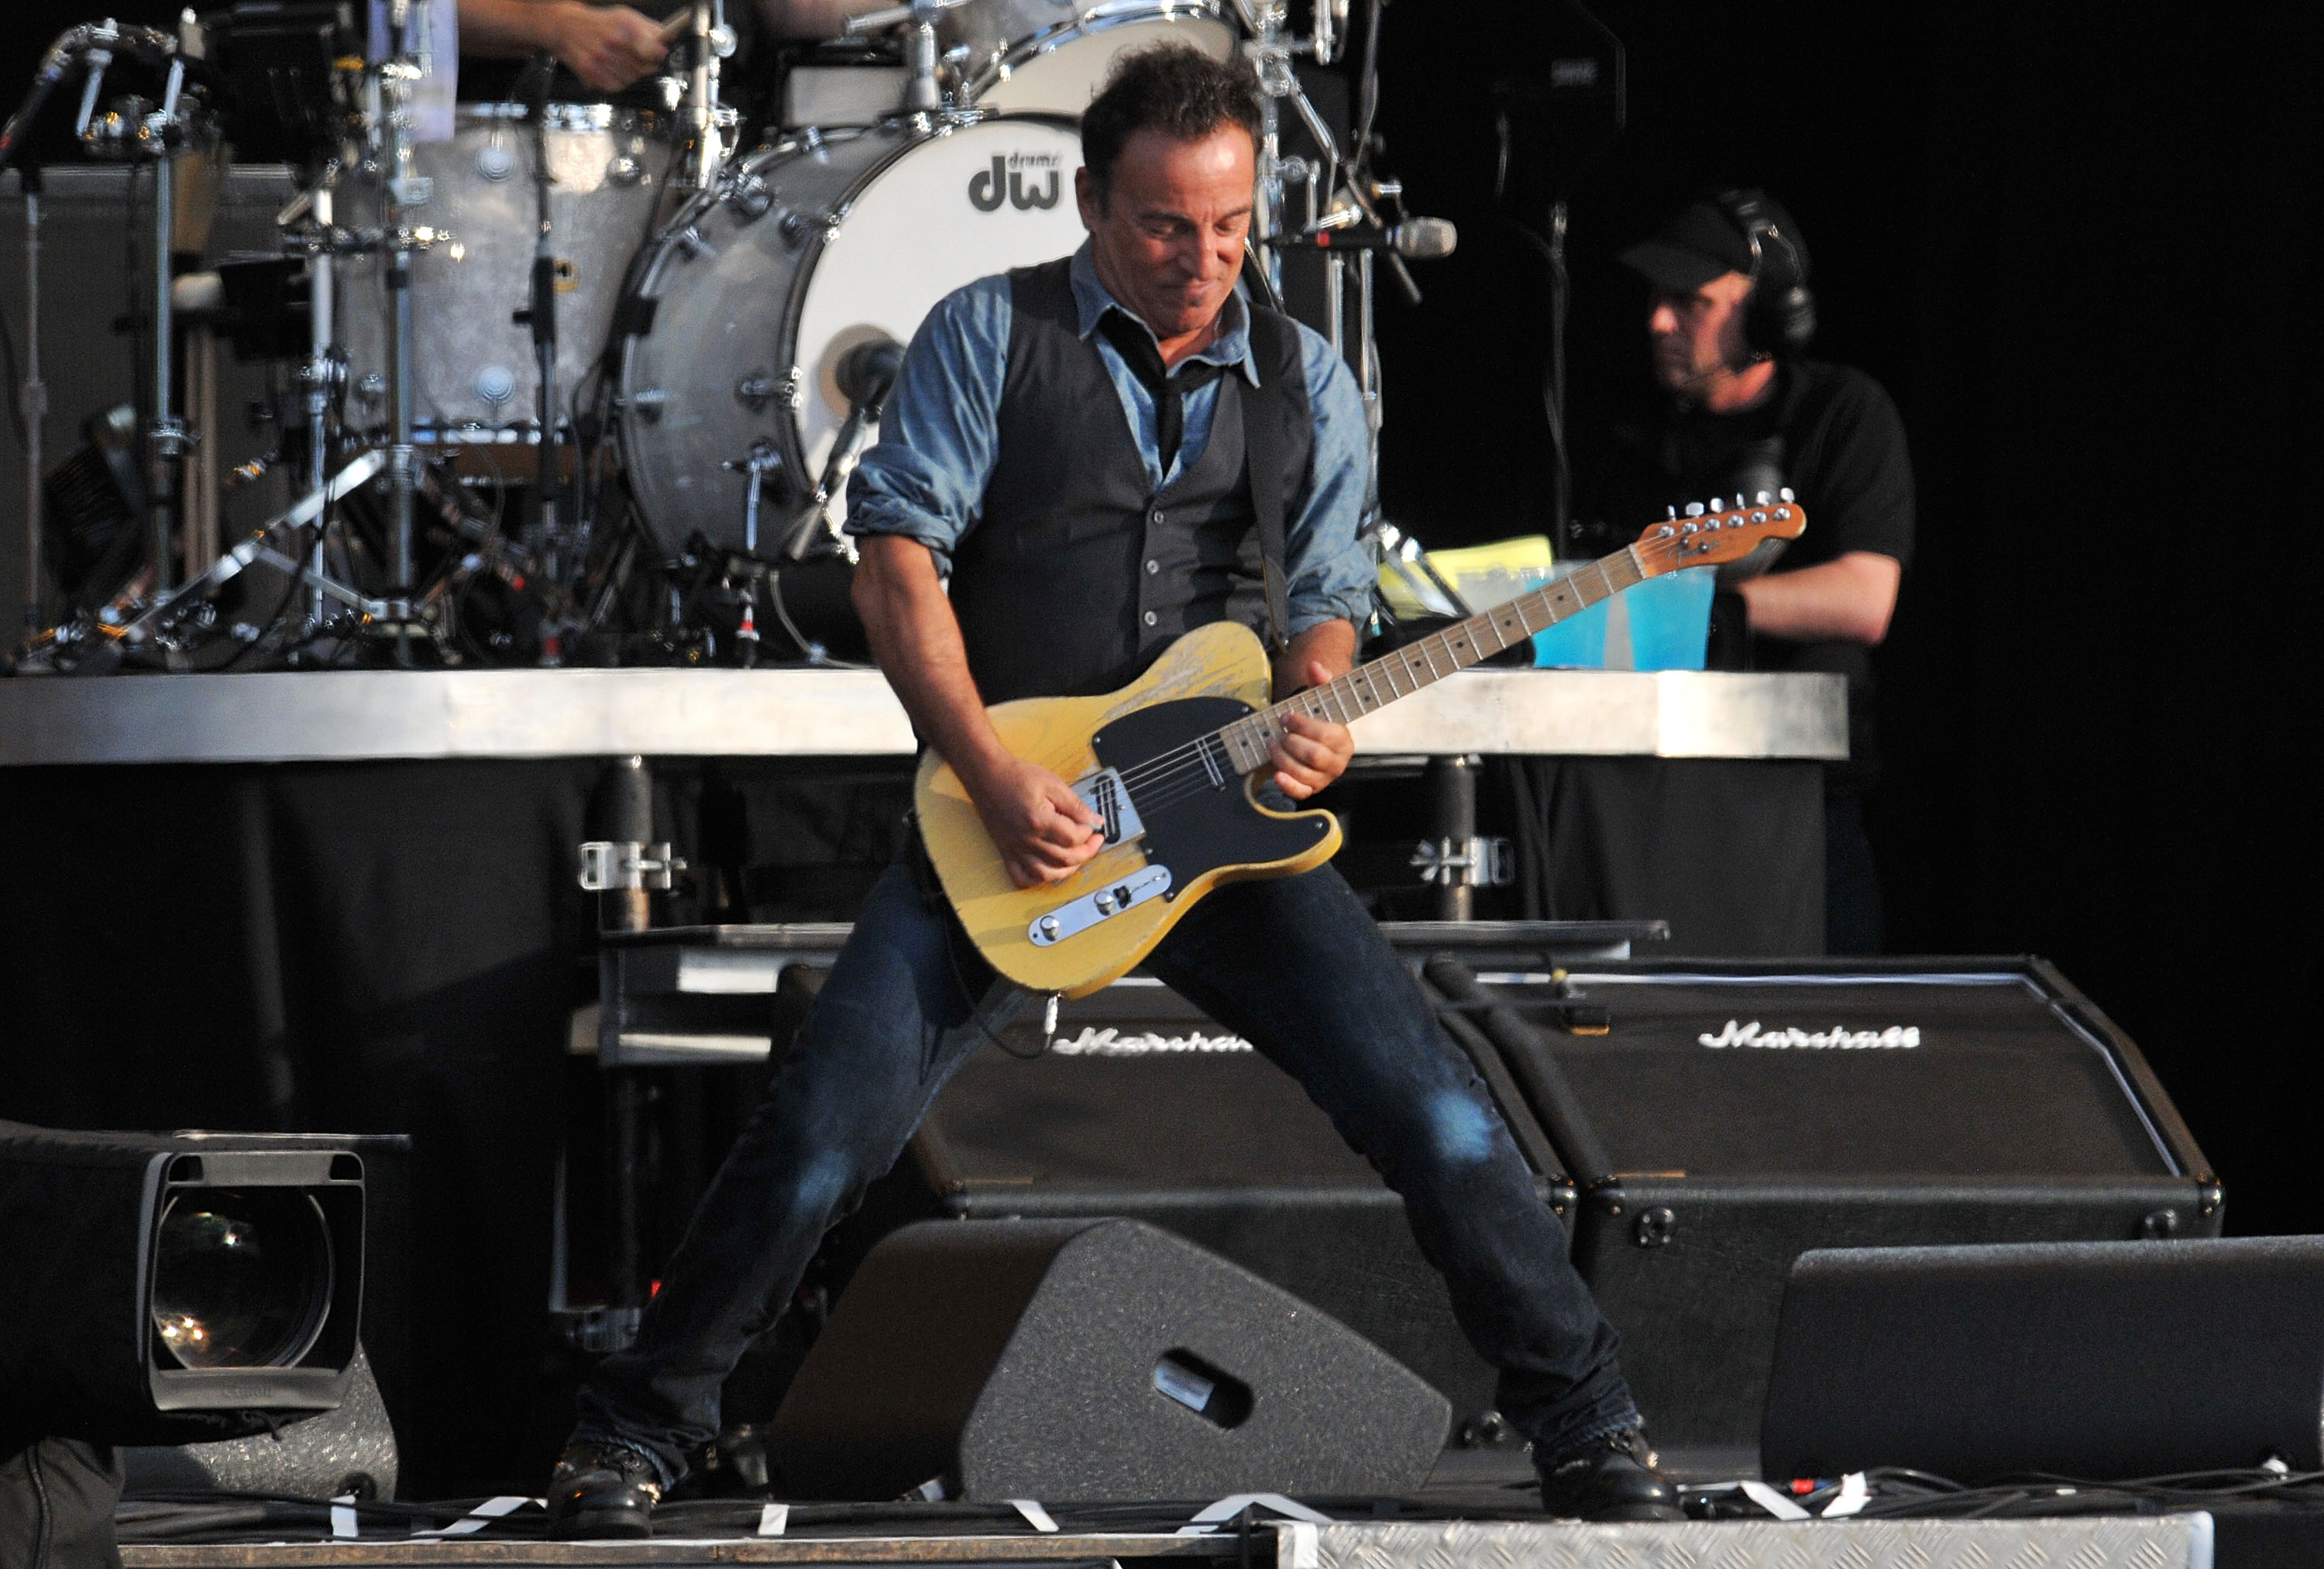 Bruce Springsteen on the big screen: The Boss' best songs used in films